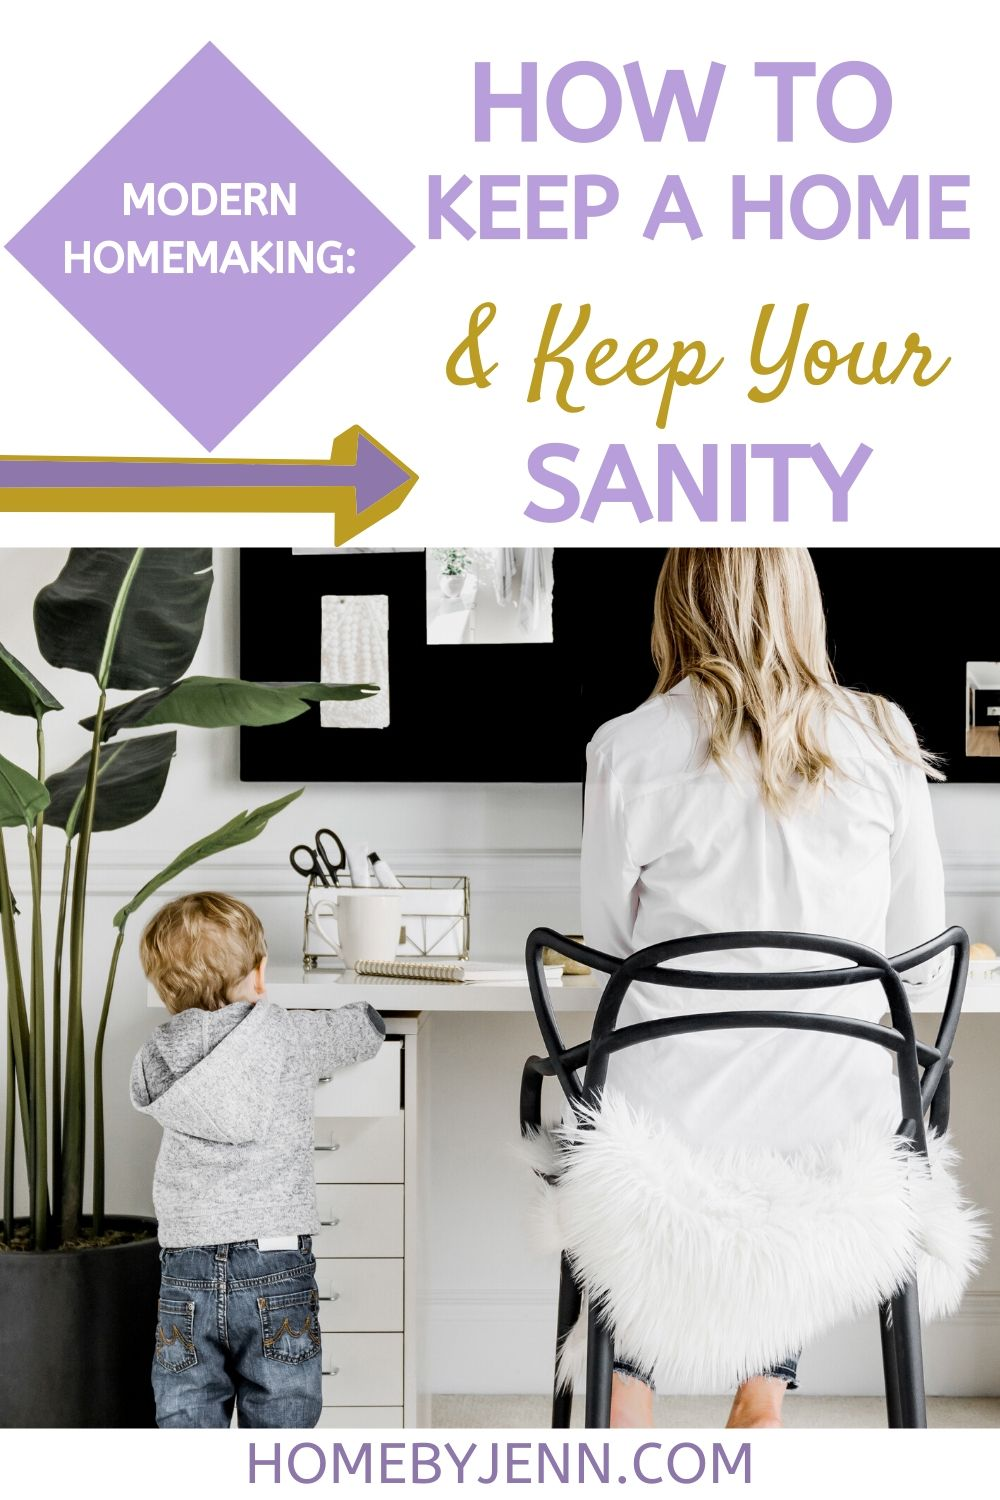 Modern Homemaking: How To Keep A Home & Keep Your Sanity ...